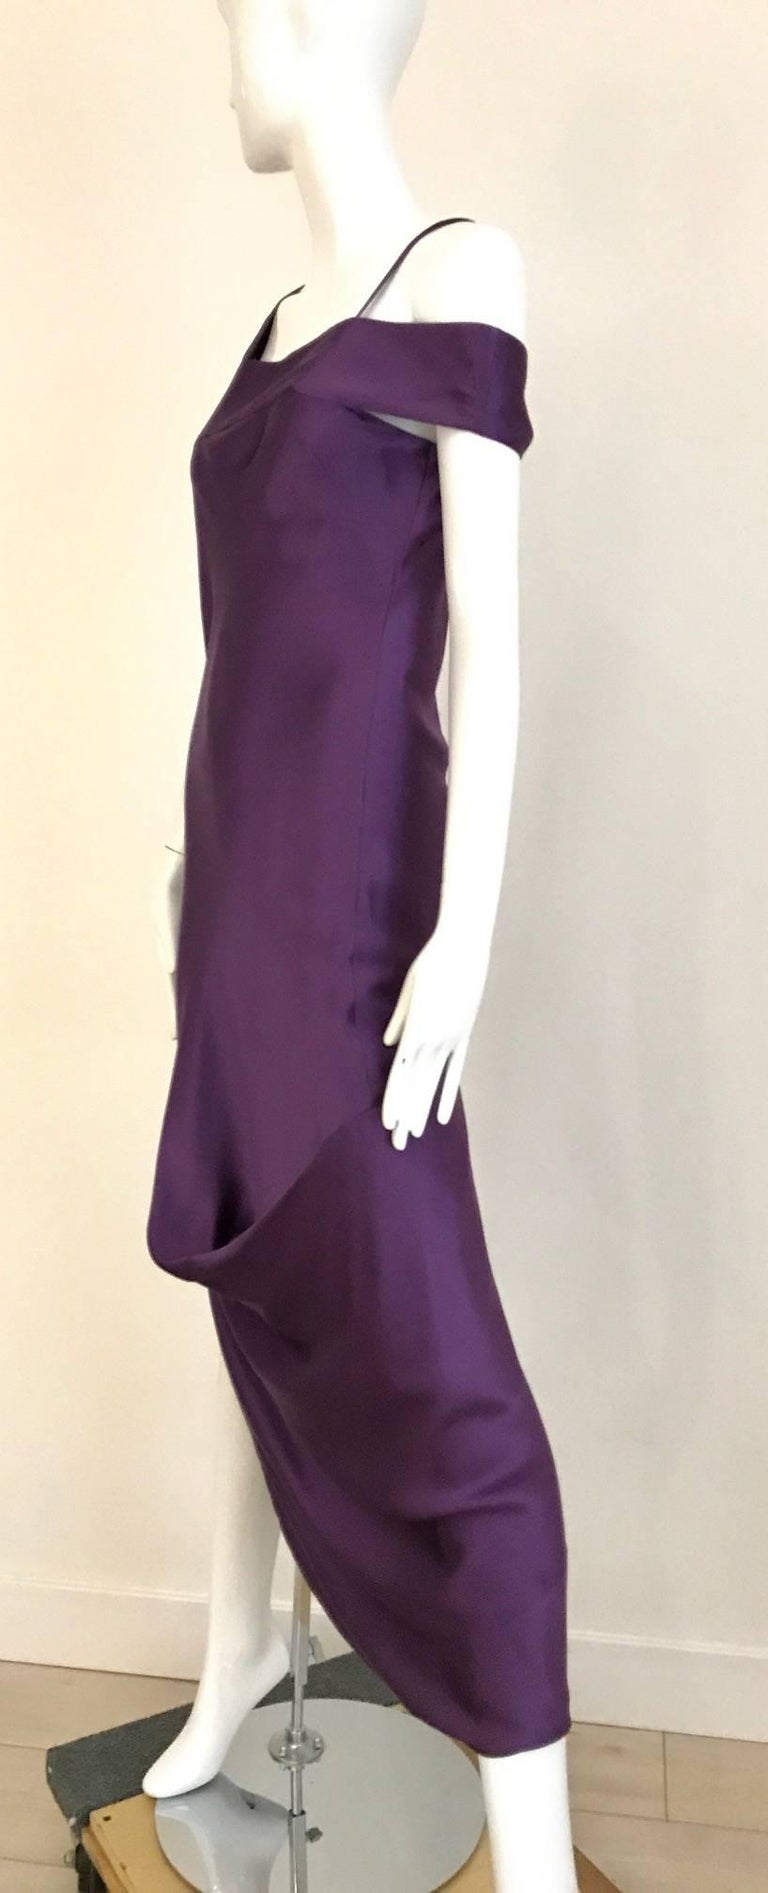 Women's ALEXANDER MCQUEEN Violet Grecian Silk Gown with Asymmetrical Shoulder For Sale